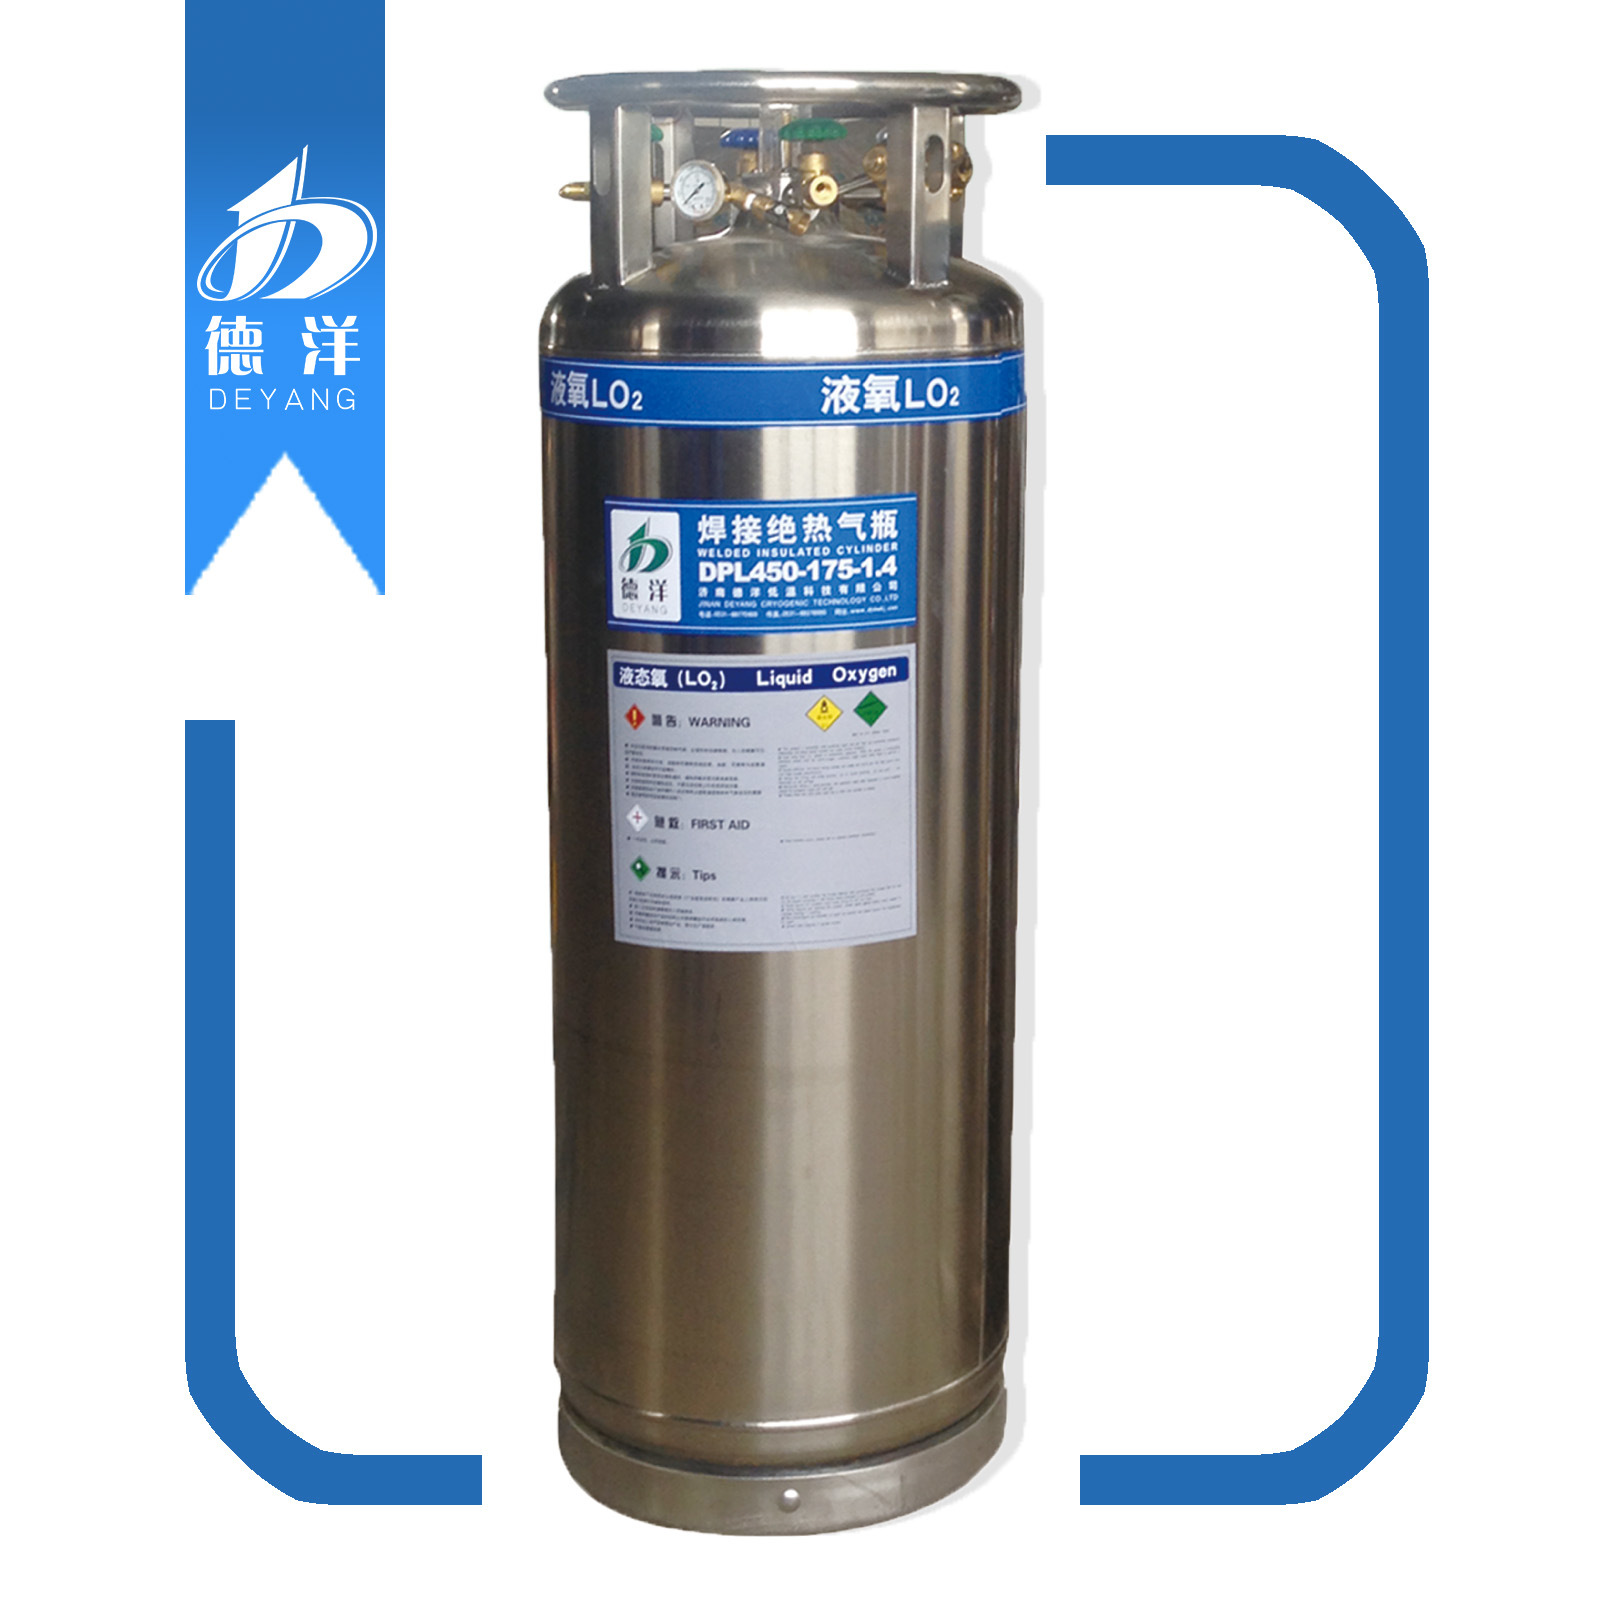 Oxygen Tank For Sale >> Hot Item High Pressure Liquid Nitrogen Oxygen Dewar Tank Cylinders For Sale